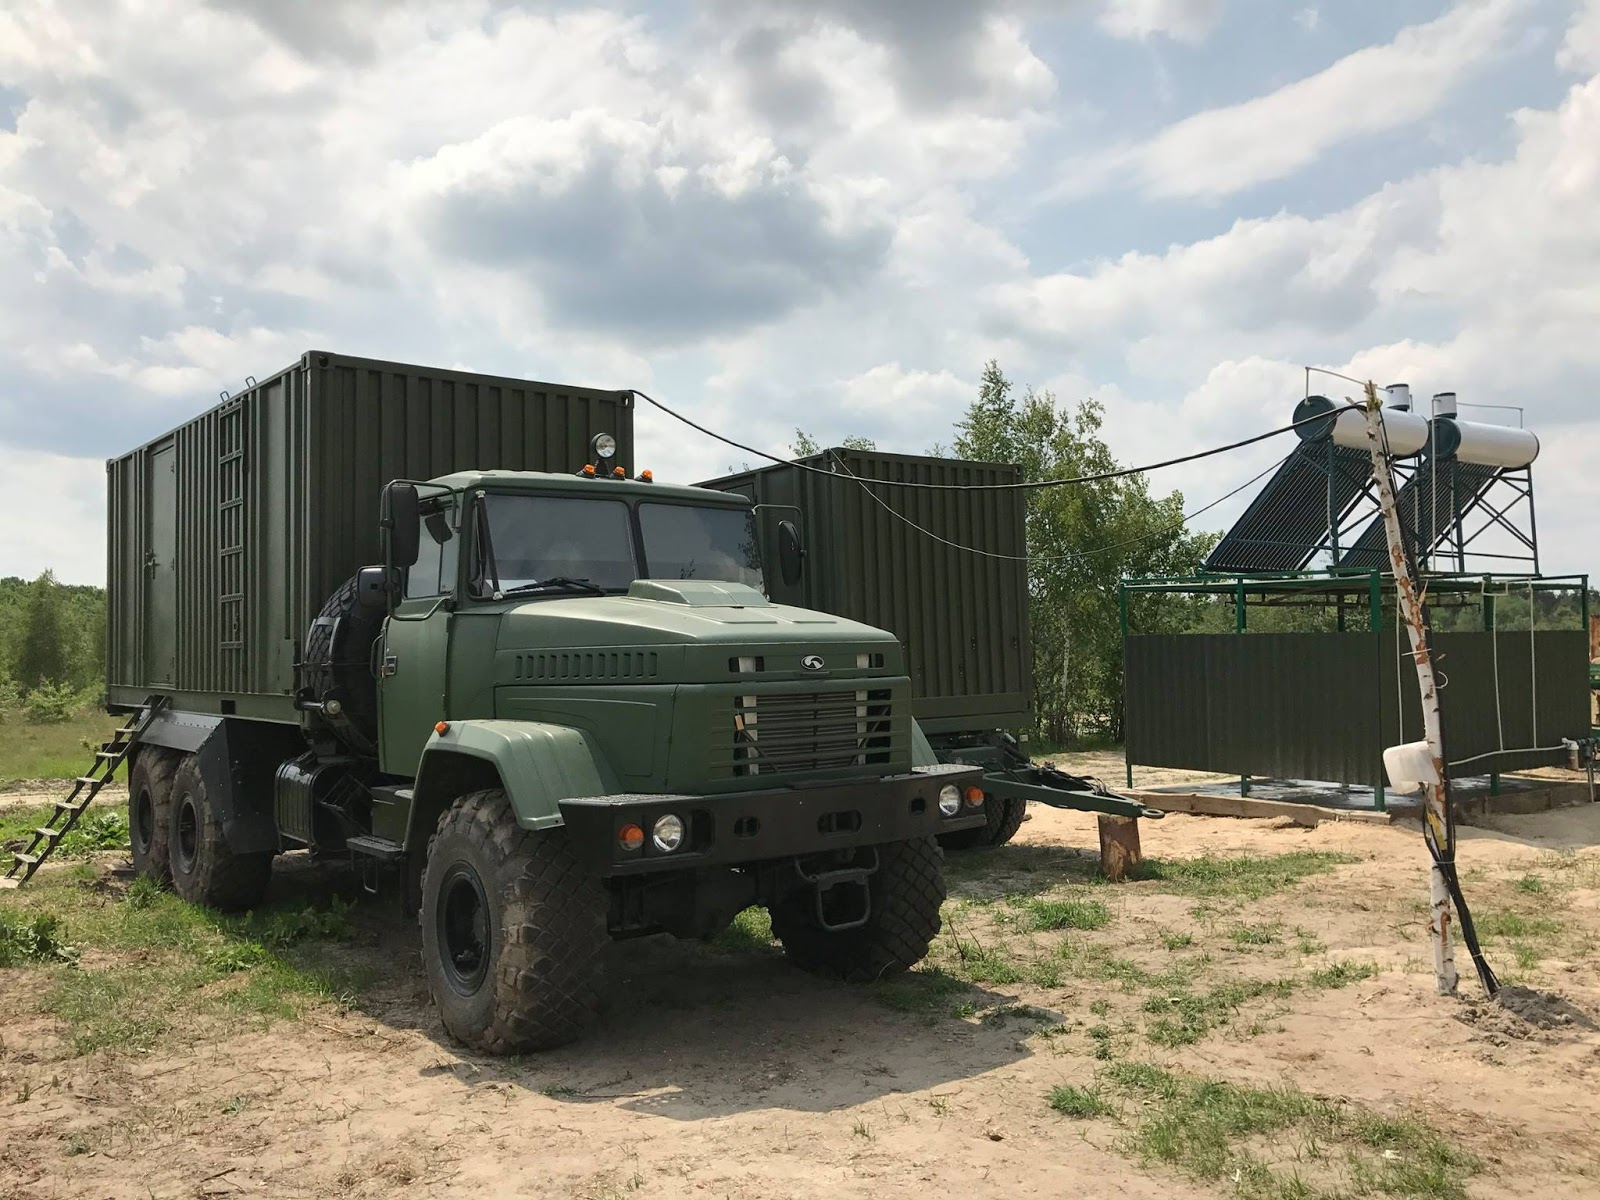 Modules with shower cubicles, toilets and mobile laundry, which arrive in the Armed Forces of Ukraine from 2015, were also presented